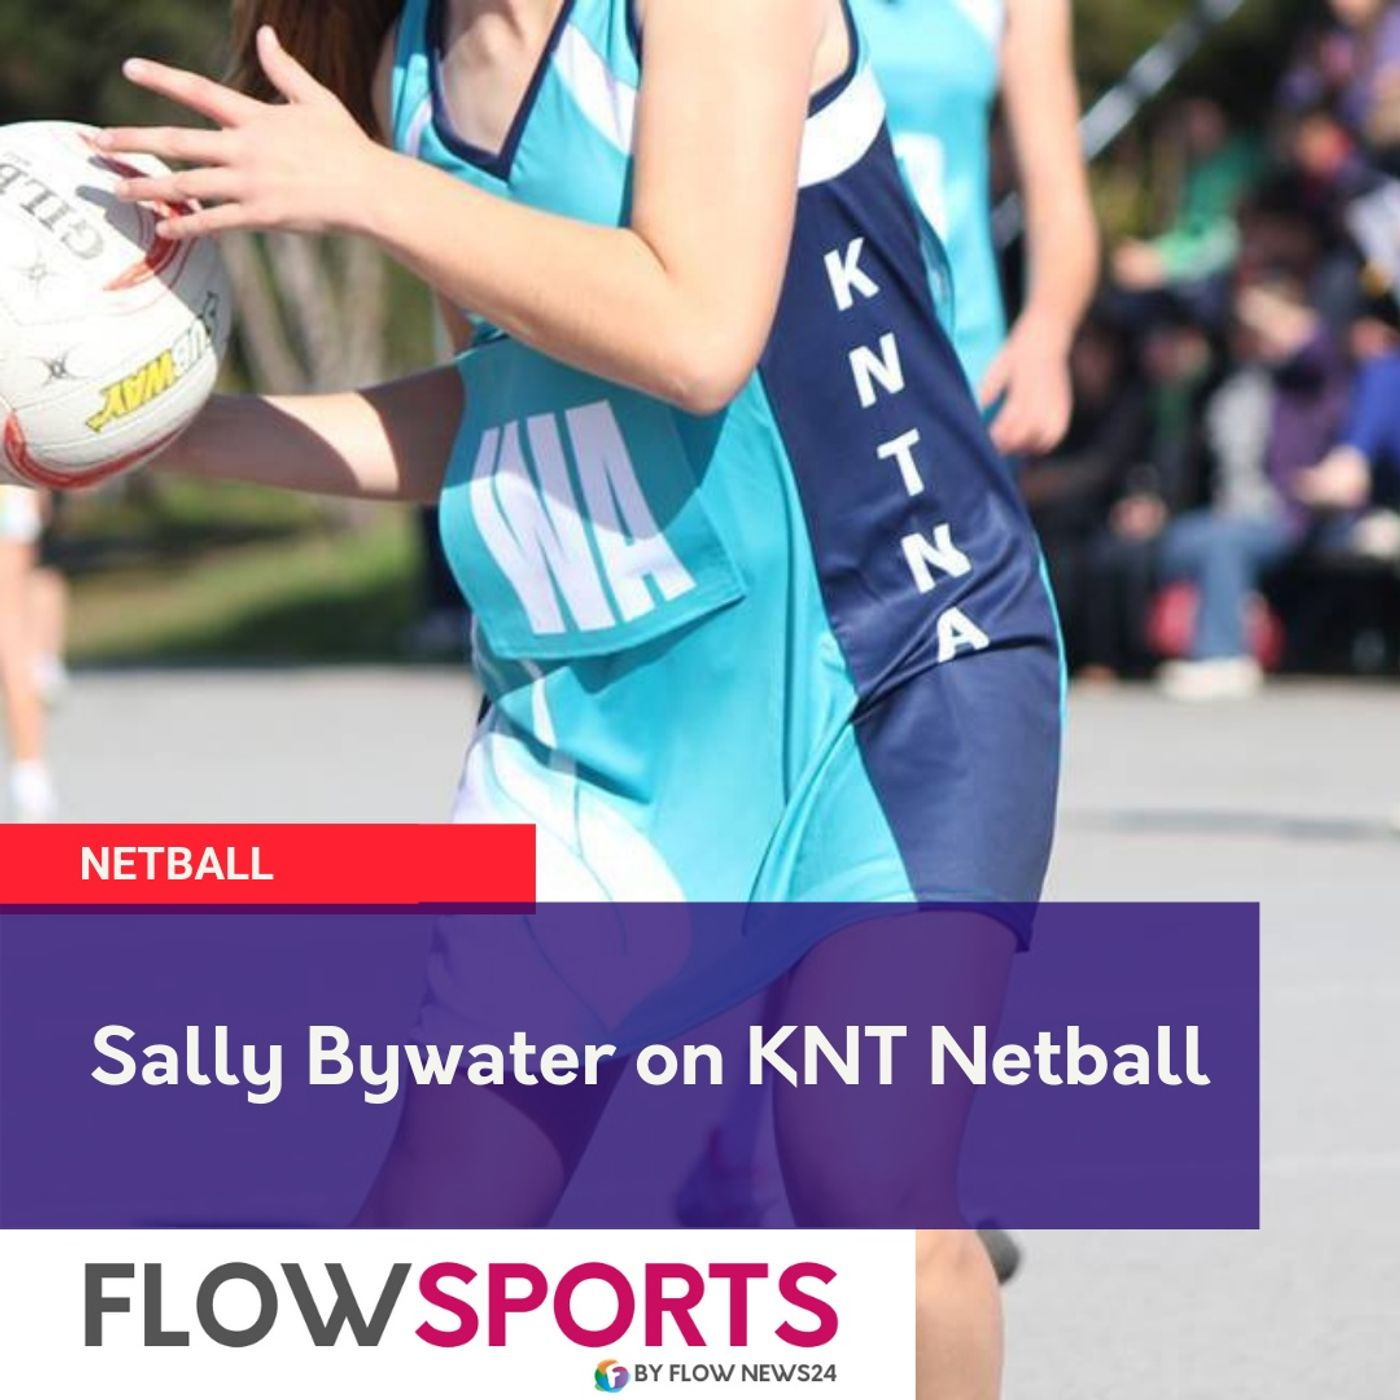 Sally Bywater on KNT Netball